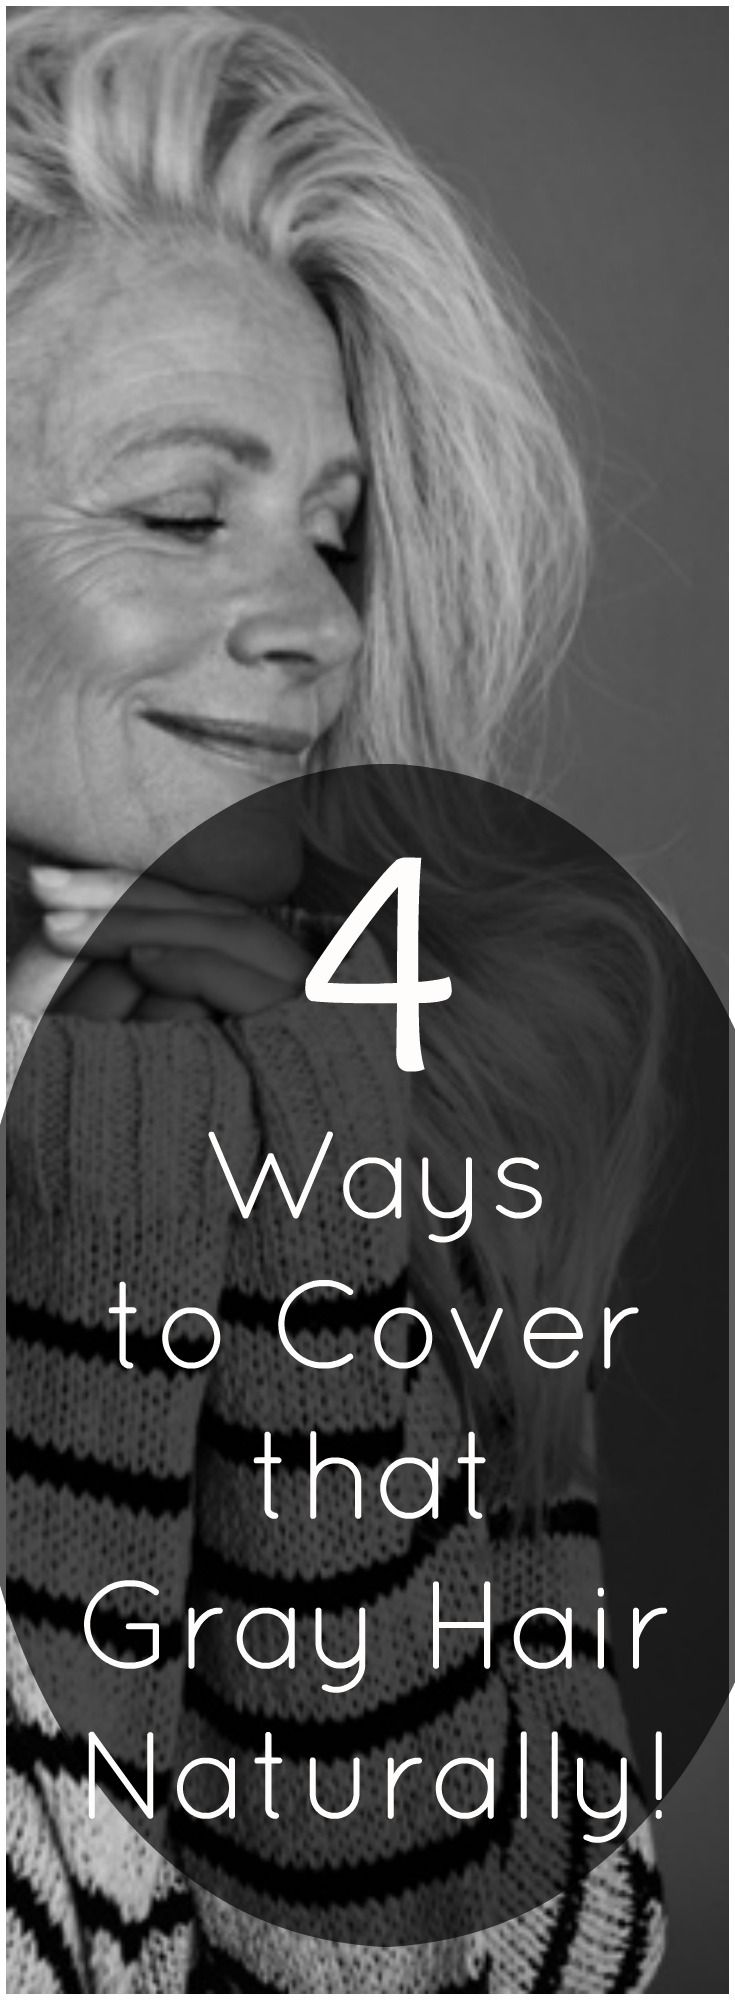 4 Ways to Cover that Gray Hair Naturally | Healthy Food MindHealthy Food Mind #grayhair